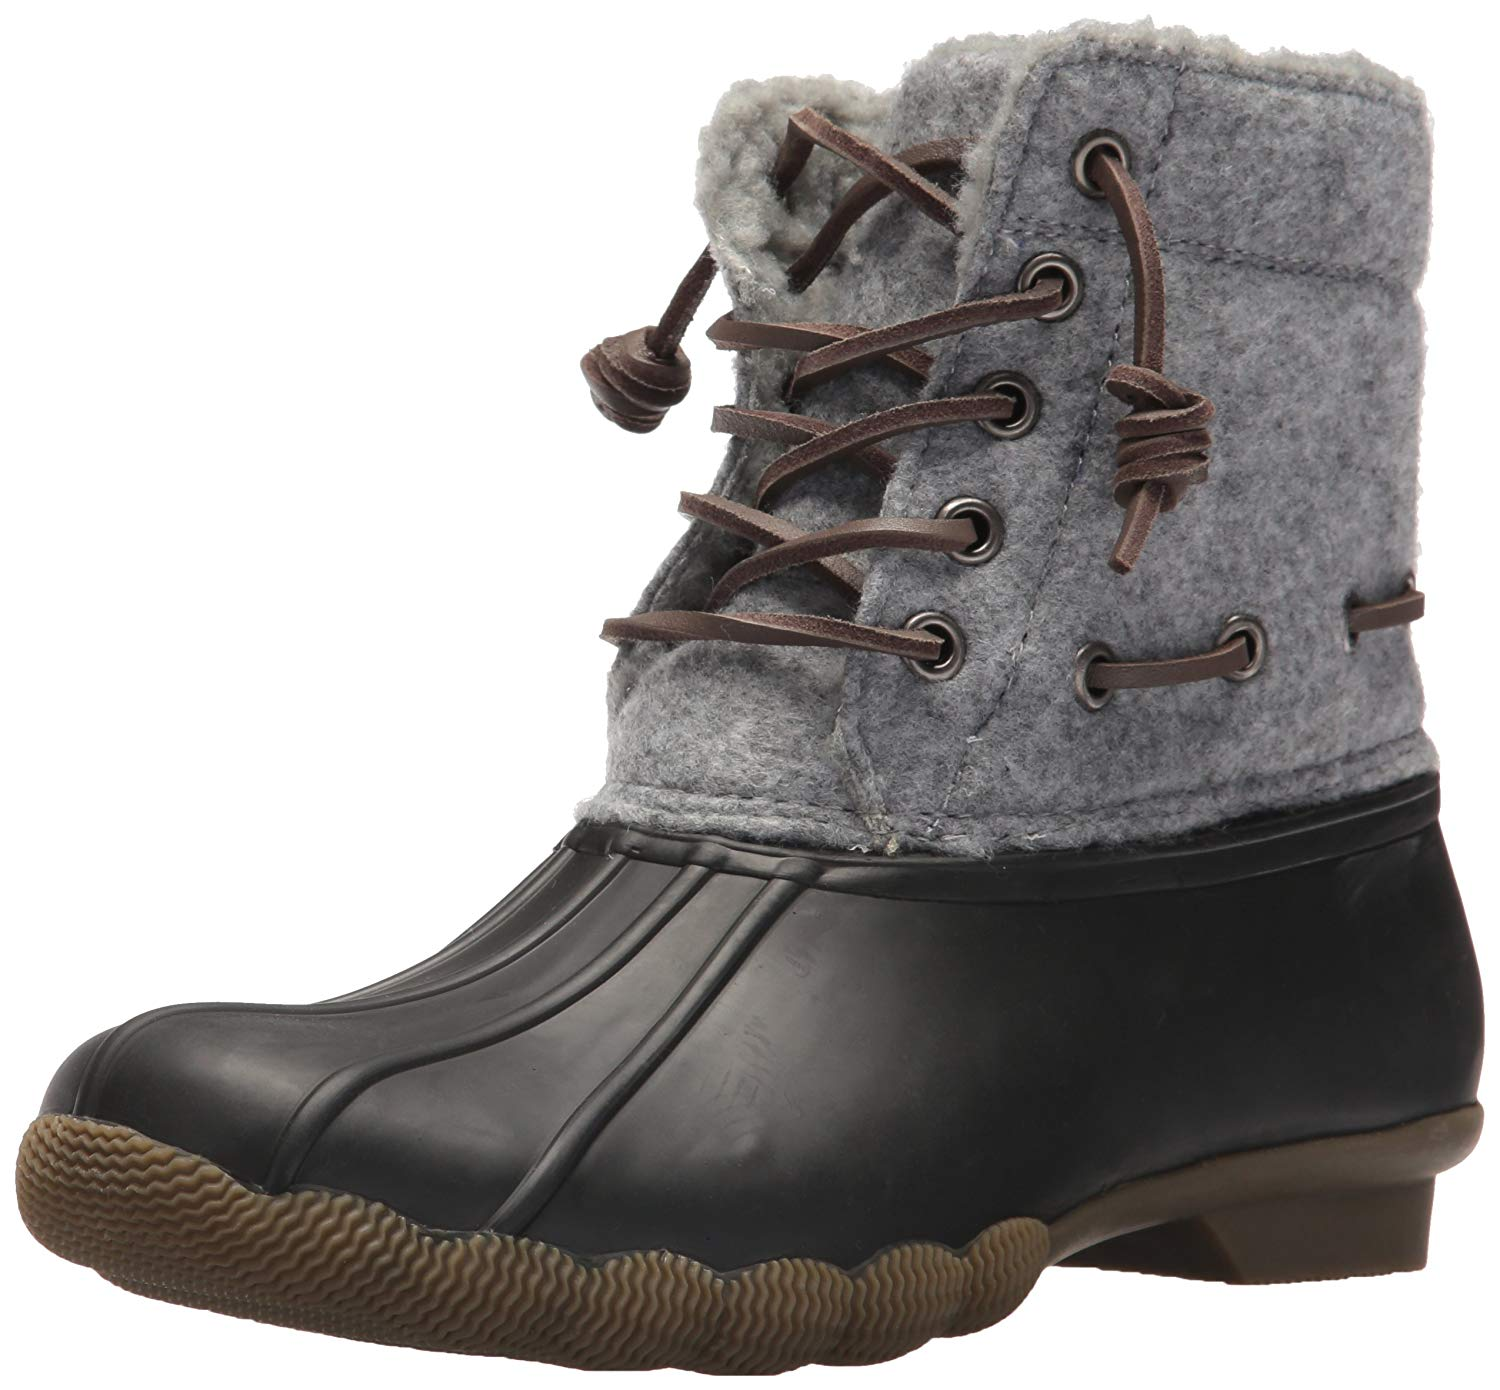 33dda3784e2 Steve Madden Womens Torrent Closed Toe Ankle Rainboots